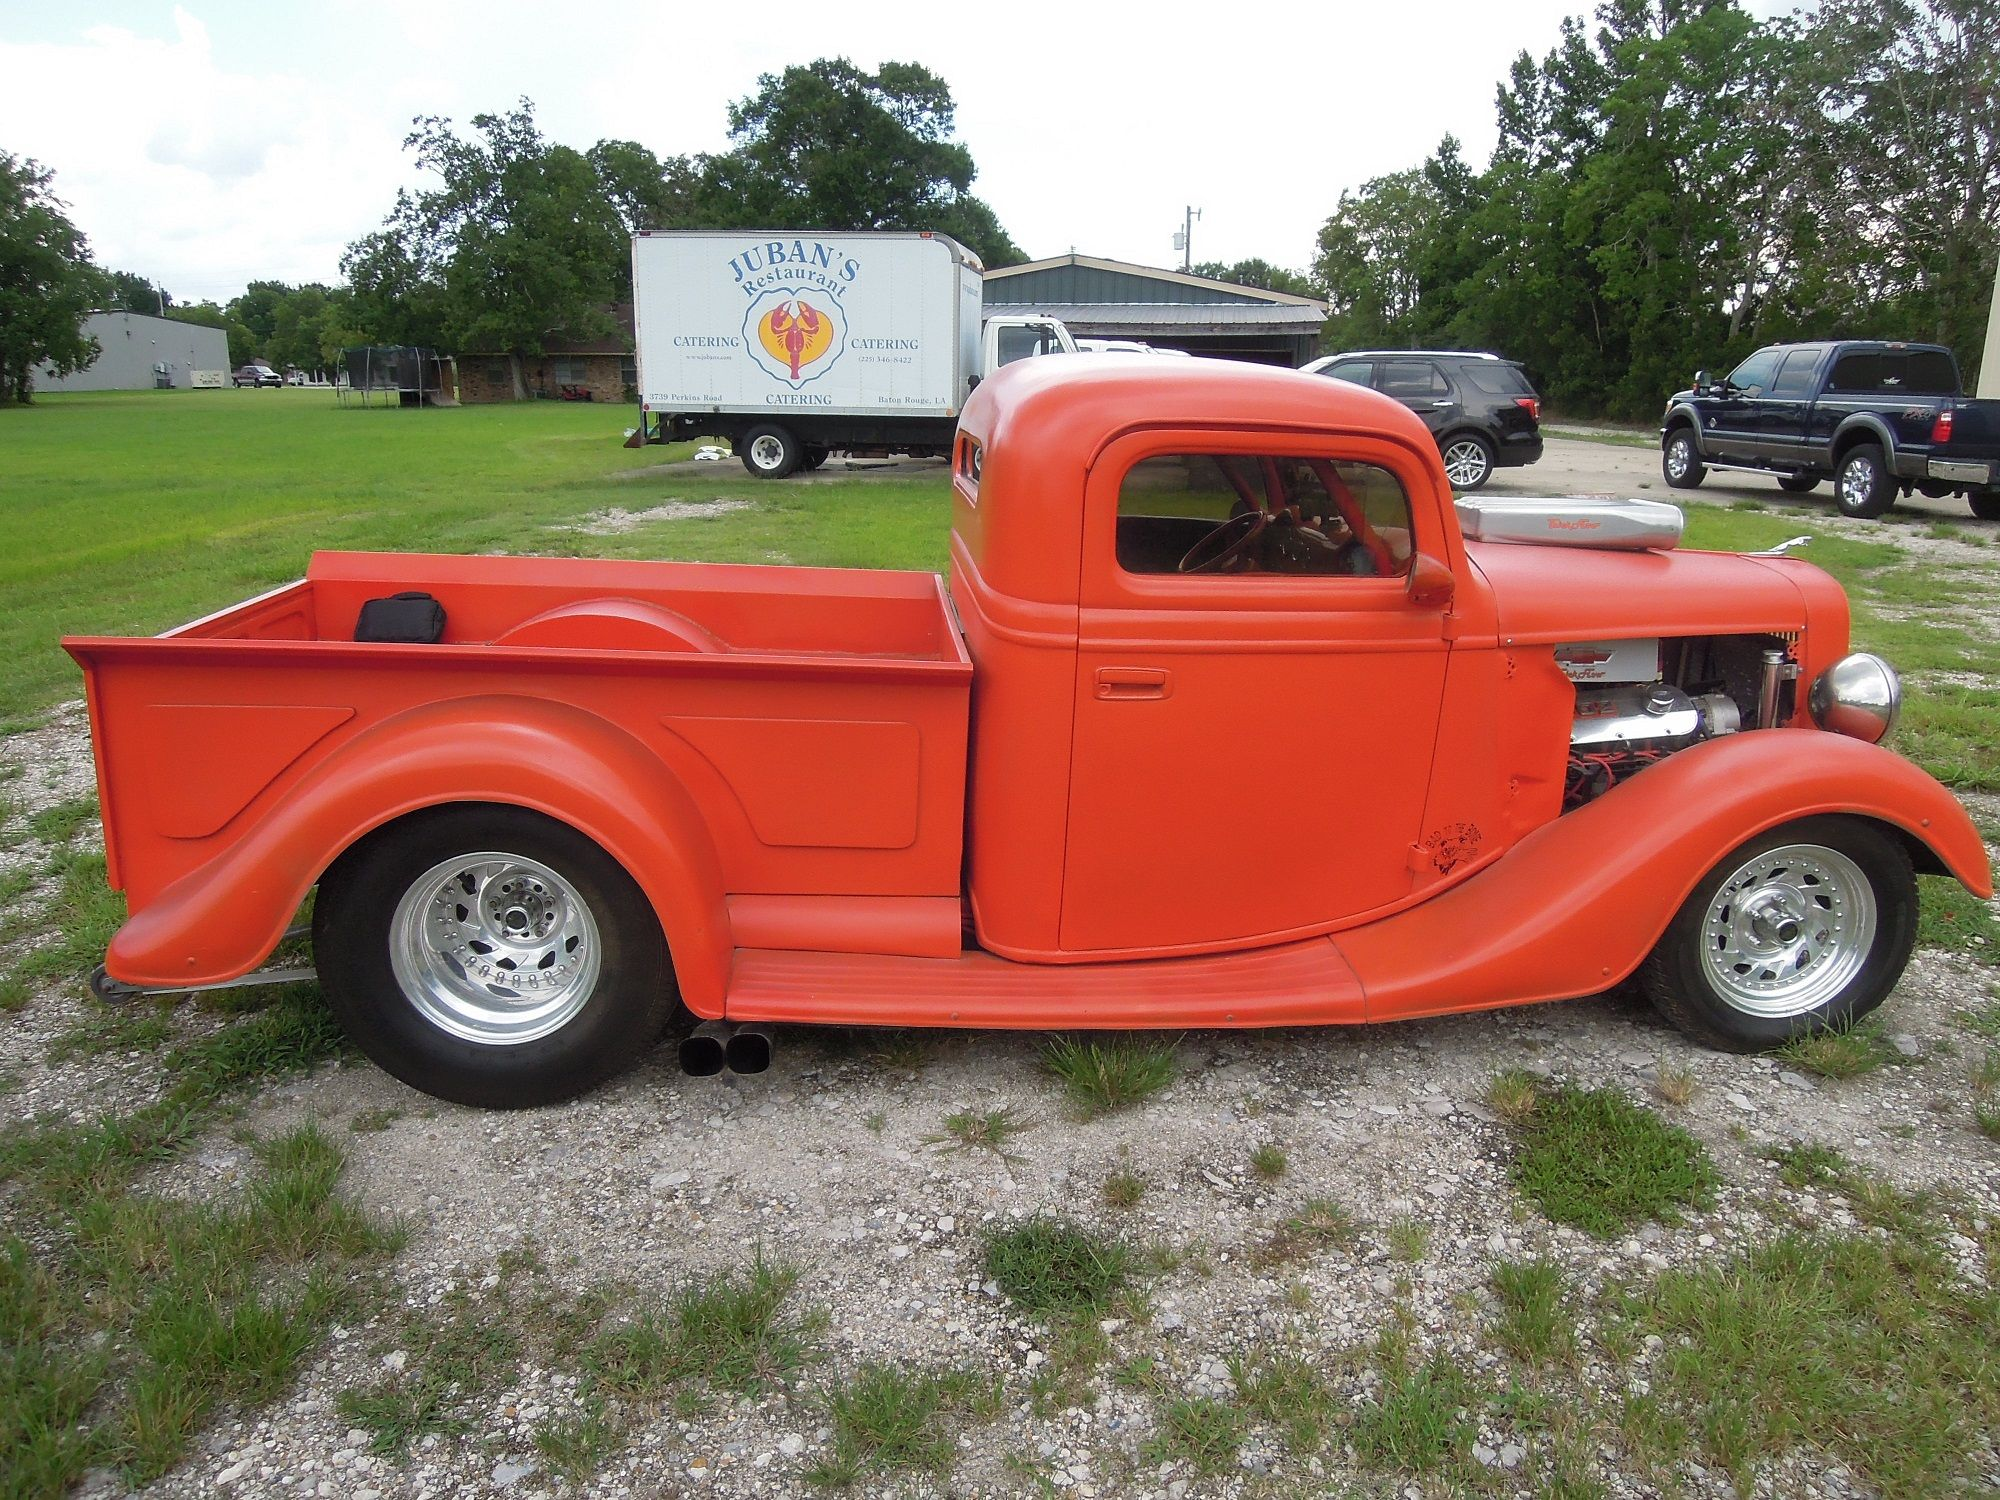 1934 Ford Truck for sale at StreetRodding.com Sell My Classic Truck ...